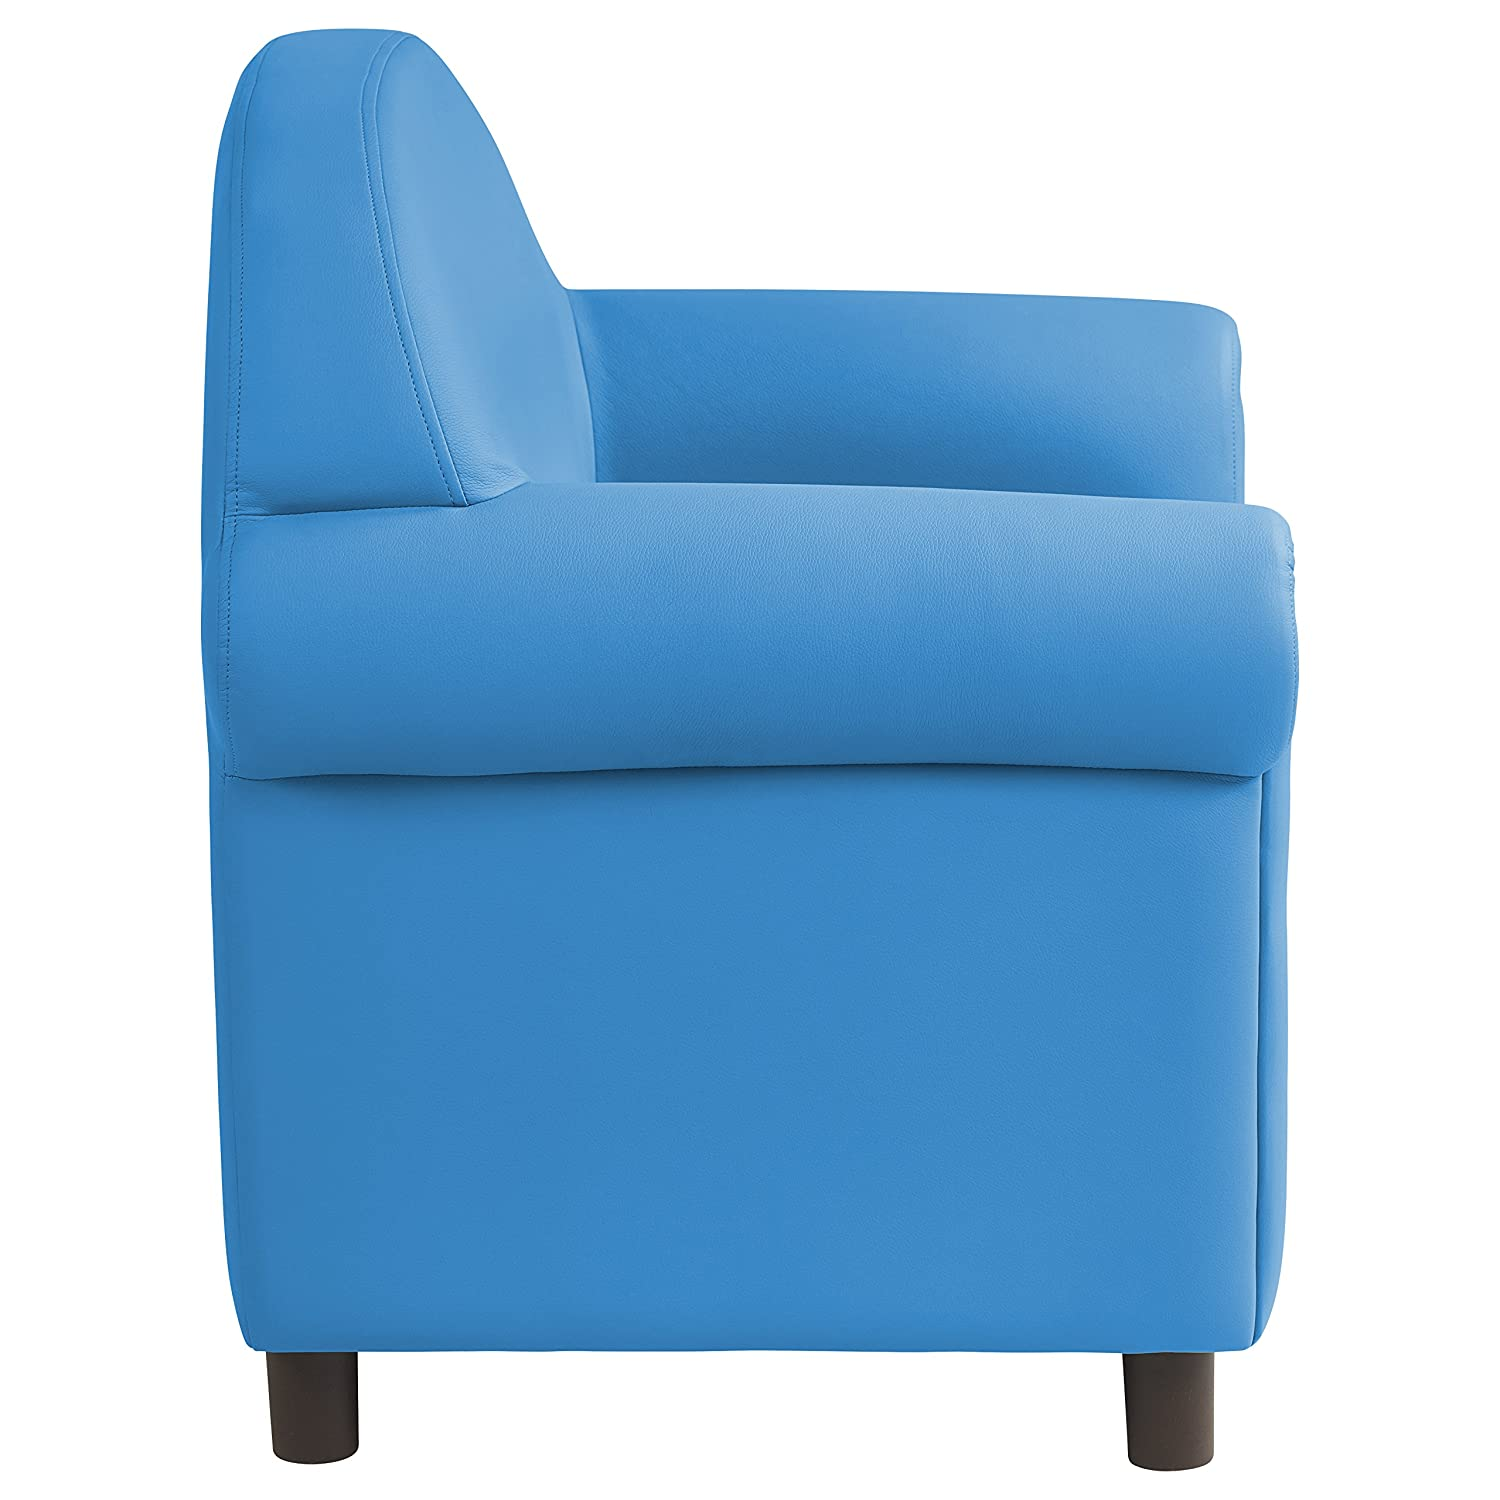 Remarkable Ecr4Kids Softzone Little Lux Upholstered Youth Chair For Kids Room French Blue Creativecarmelina Interior Chair Design Creativecarmelinacom